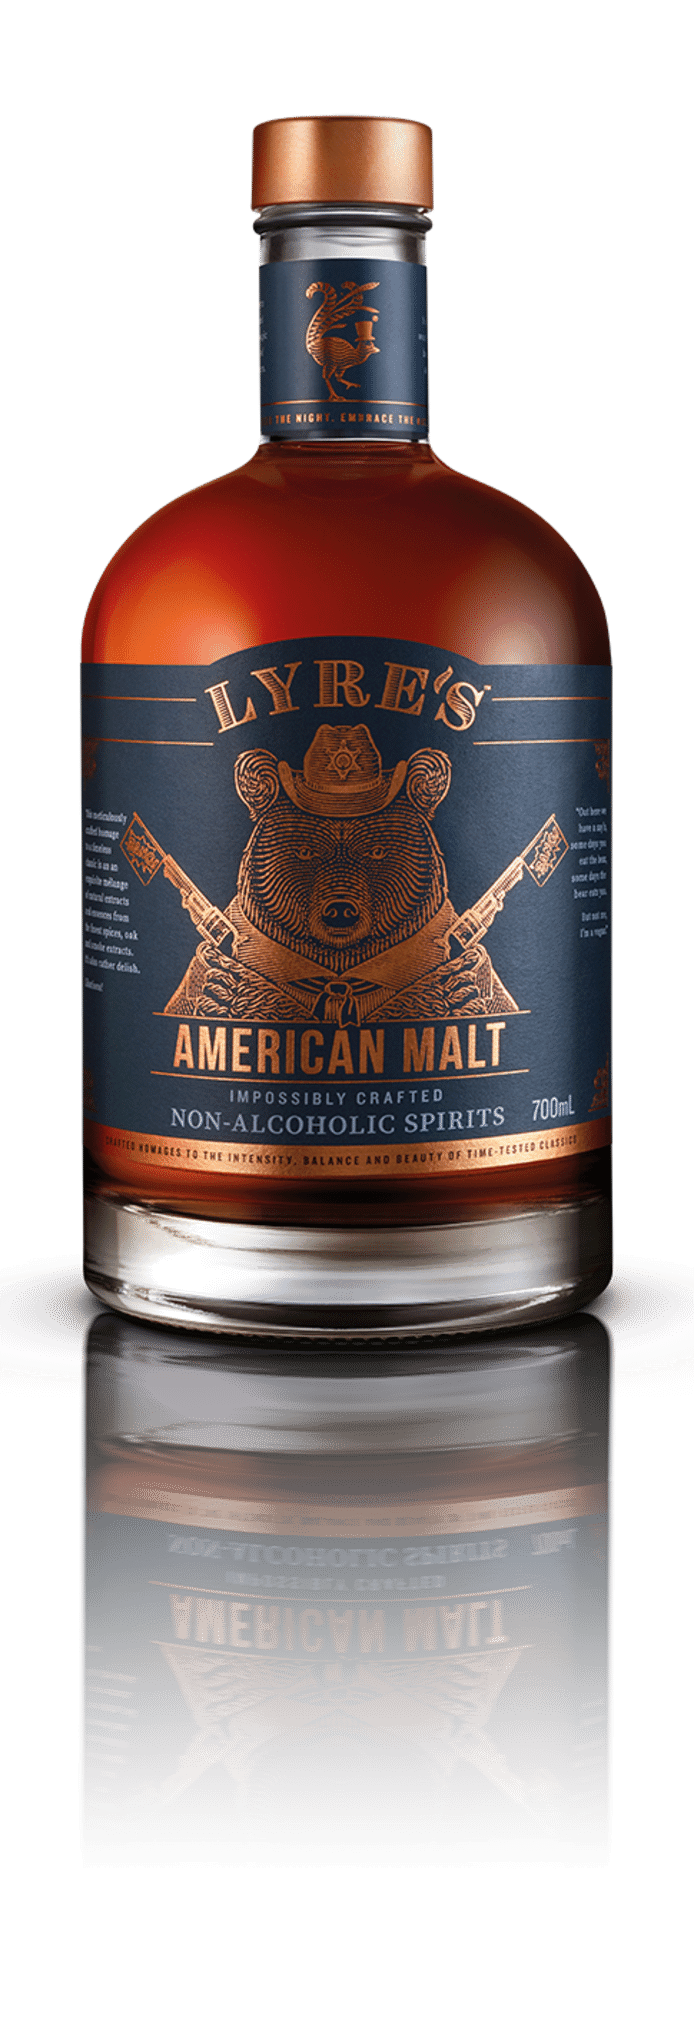 American Malt is de vervanger voor whisky